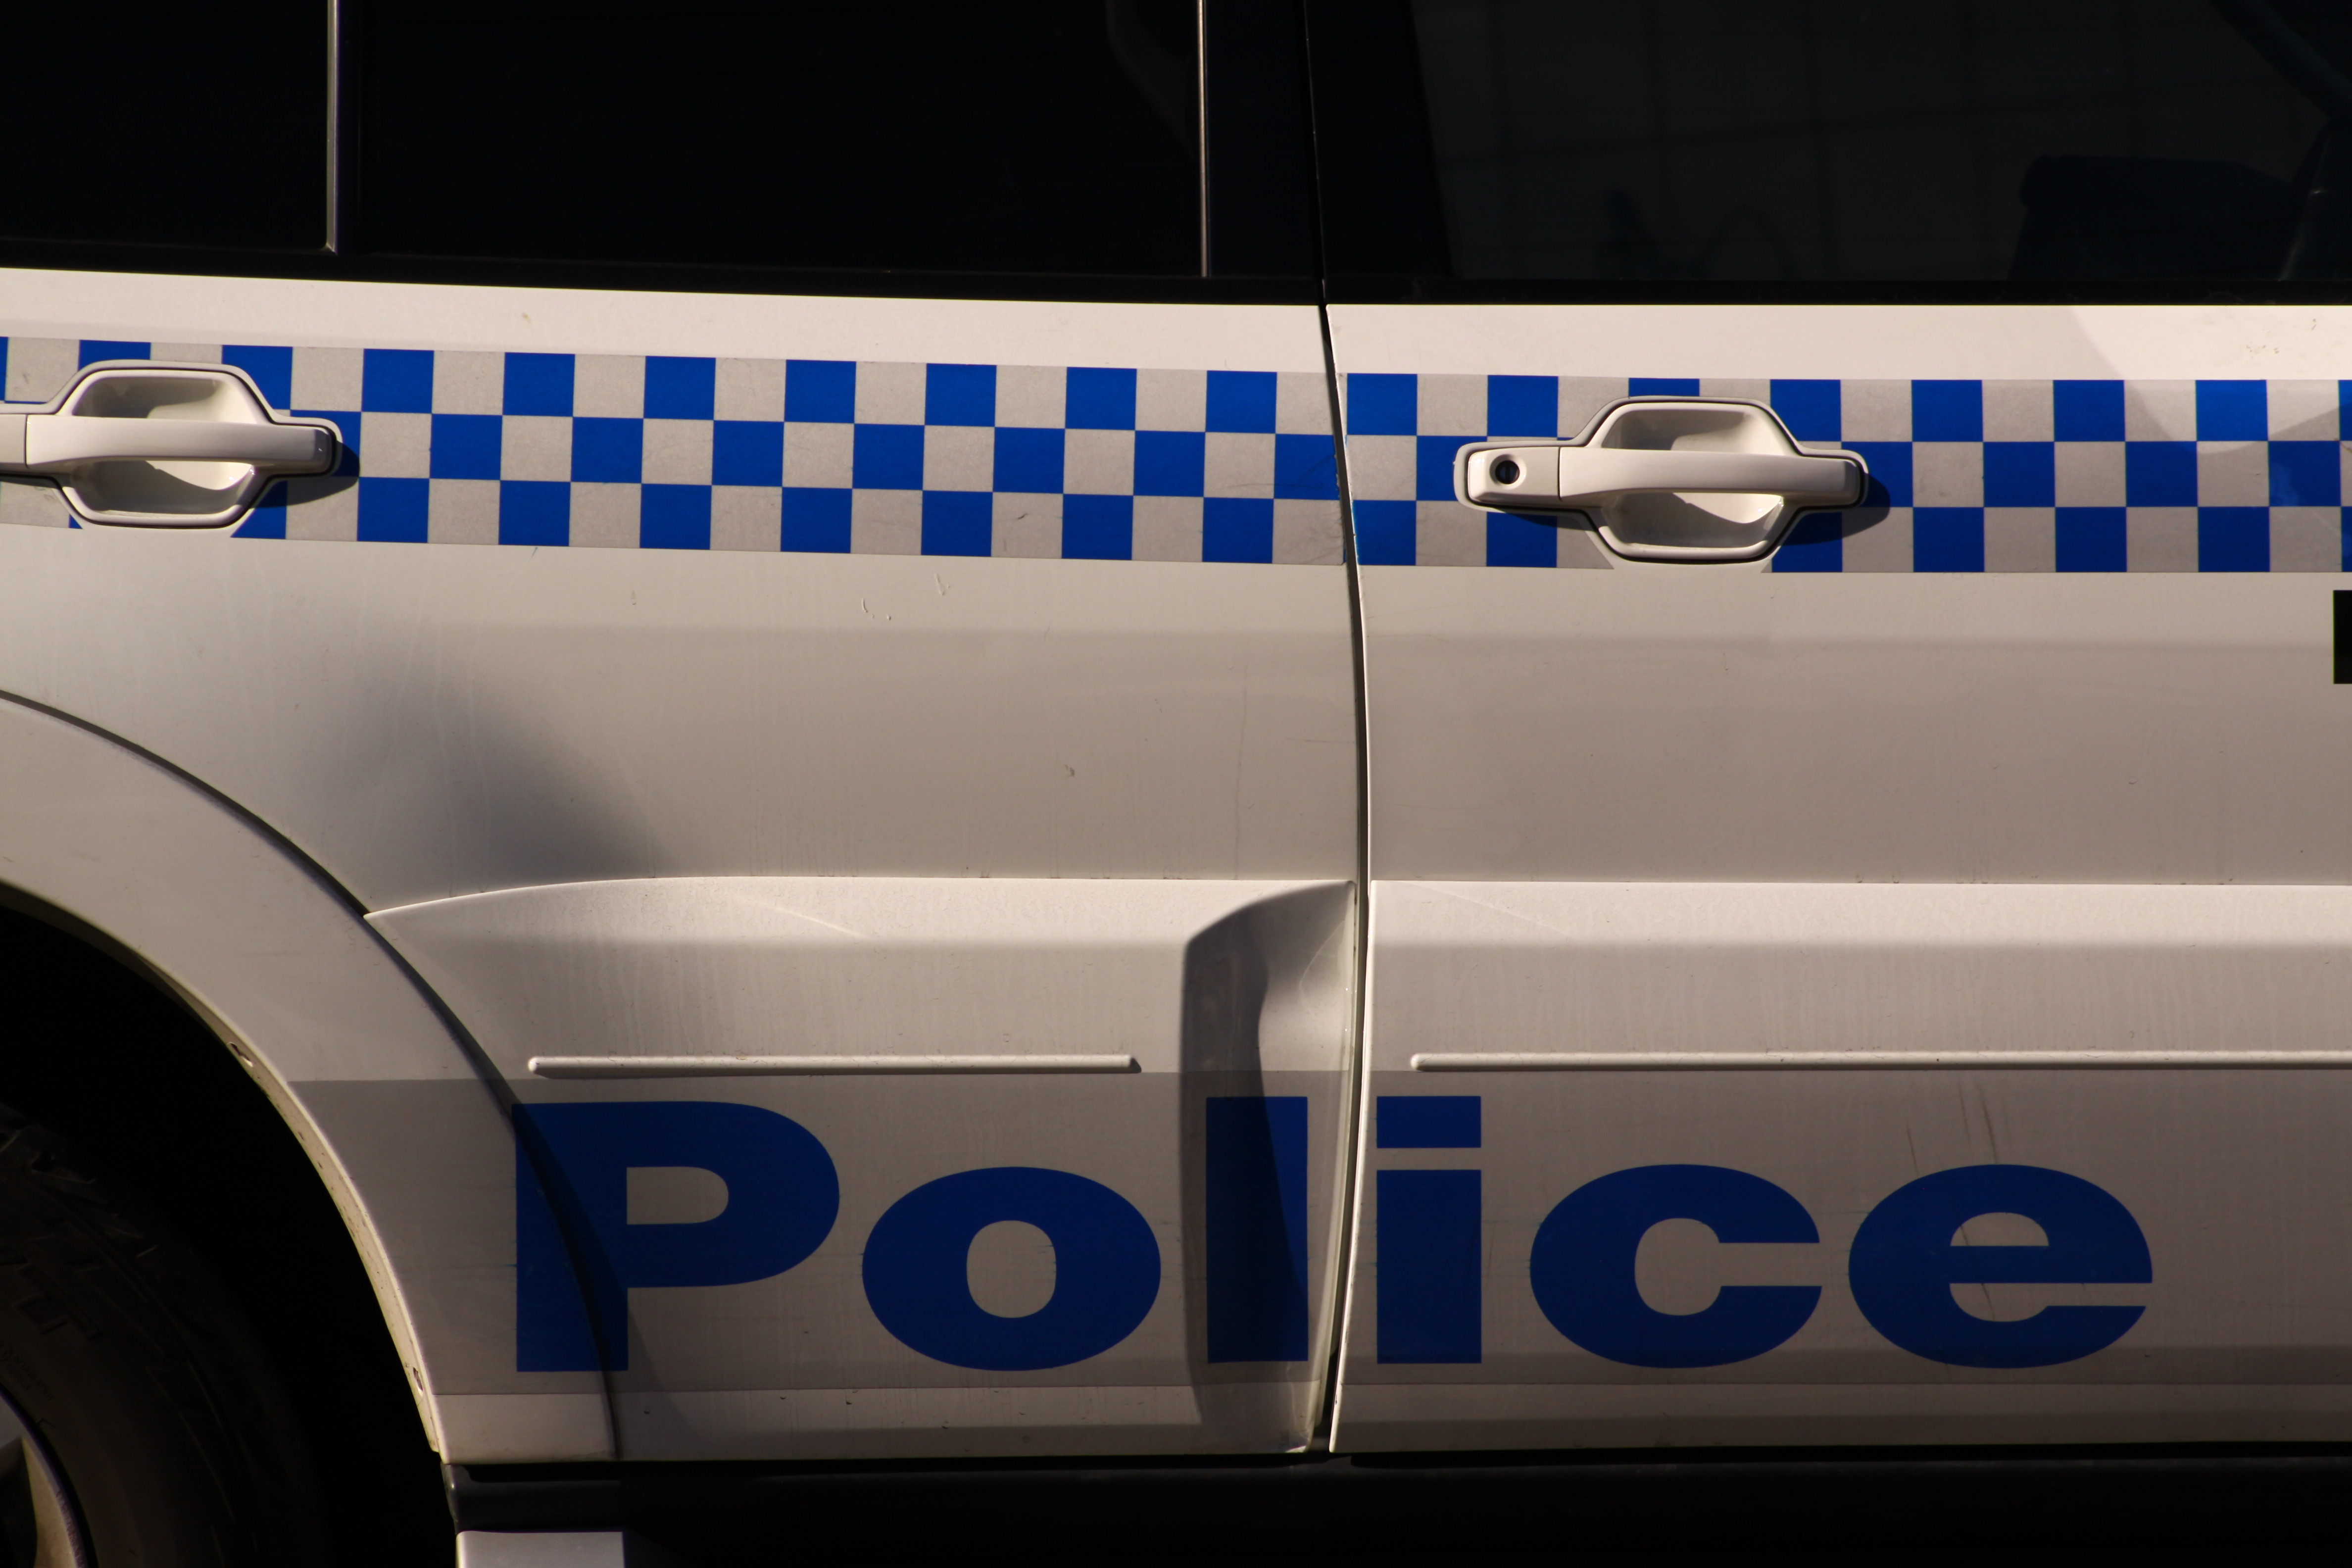 NBN News | ARRESTS MADE AS POLICE INVESTIGATE SPATE OF ROBBERIES